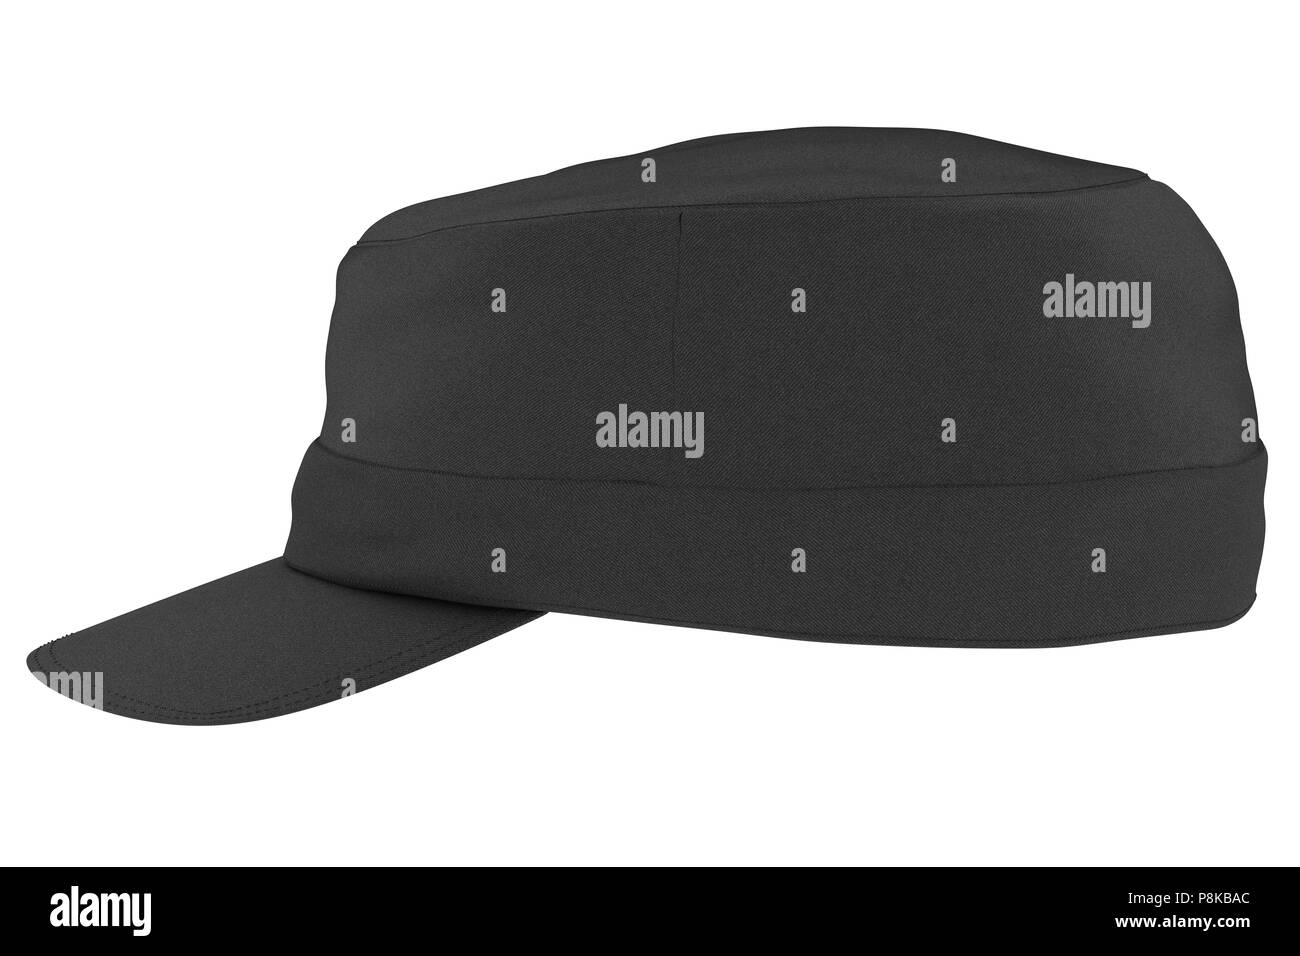 27bb2aa8 Black cap isolated on white background. Include clipping path. 3d render